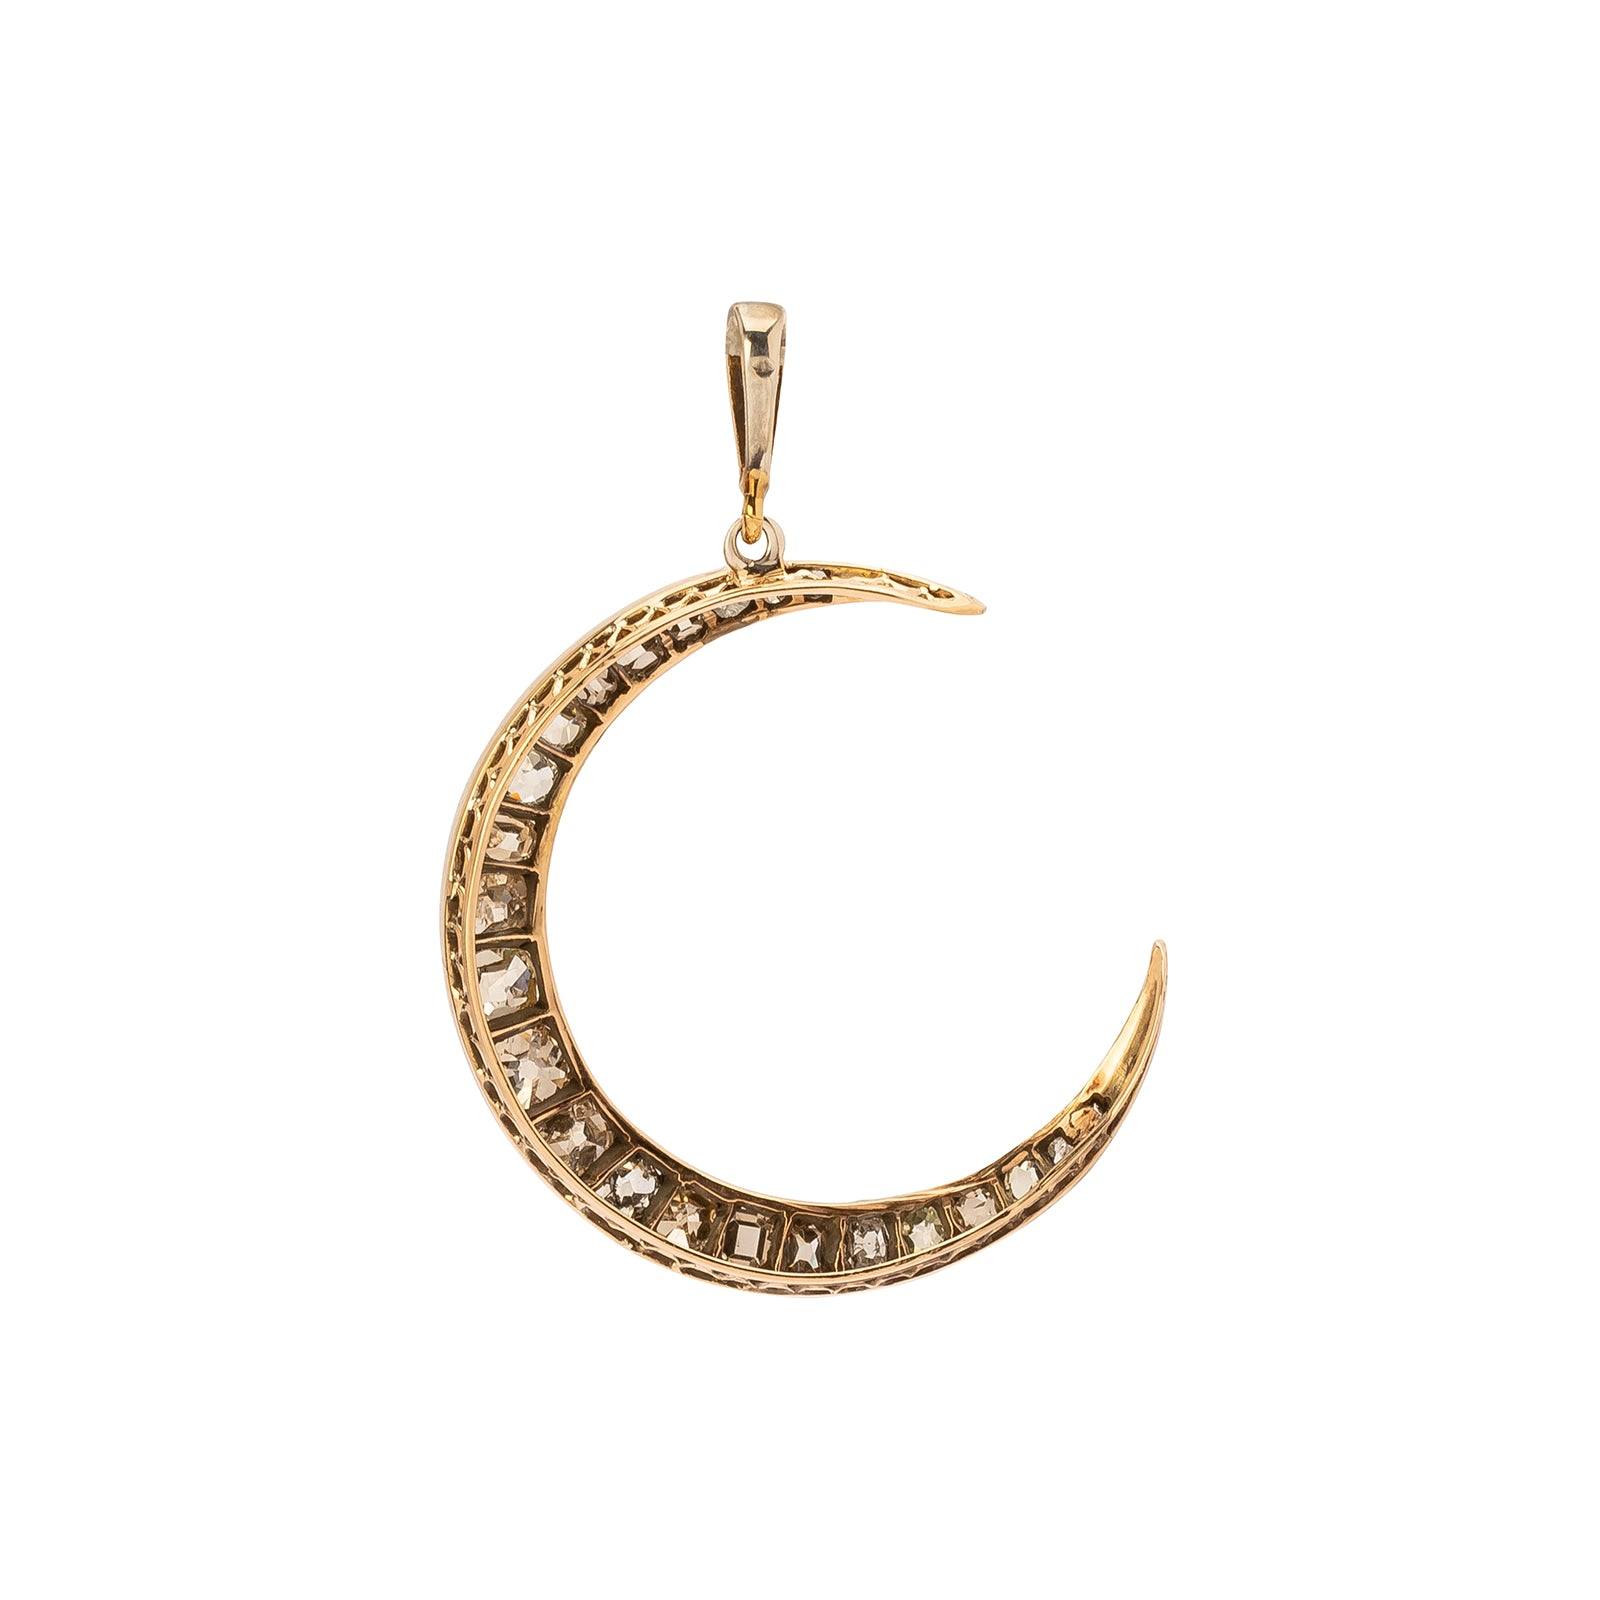 Antique & Vintage Jewelry Crescent Open Moon Pendant - Charms & Pendants - Broken English Jewelry